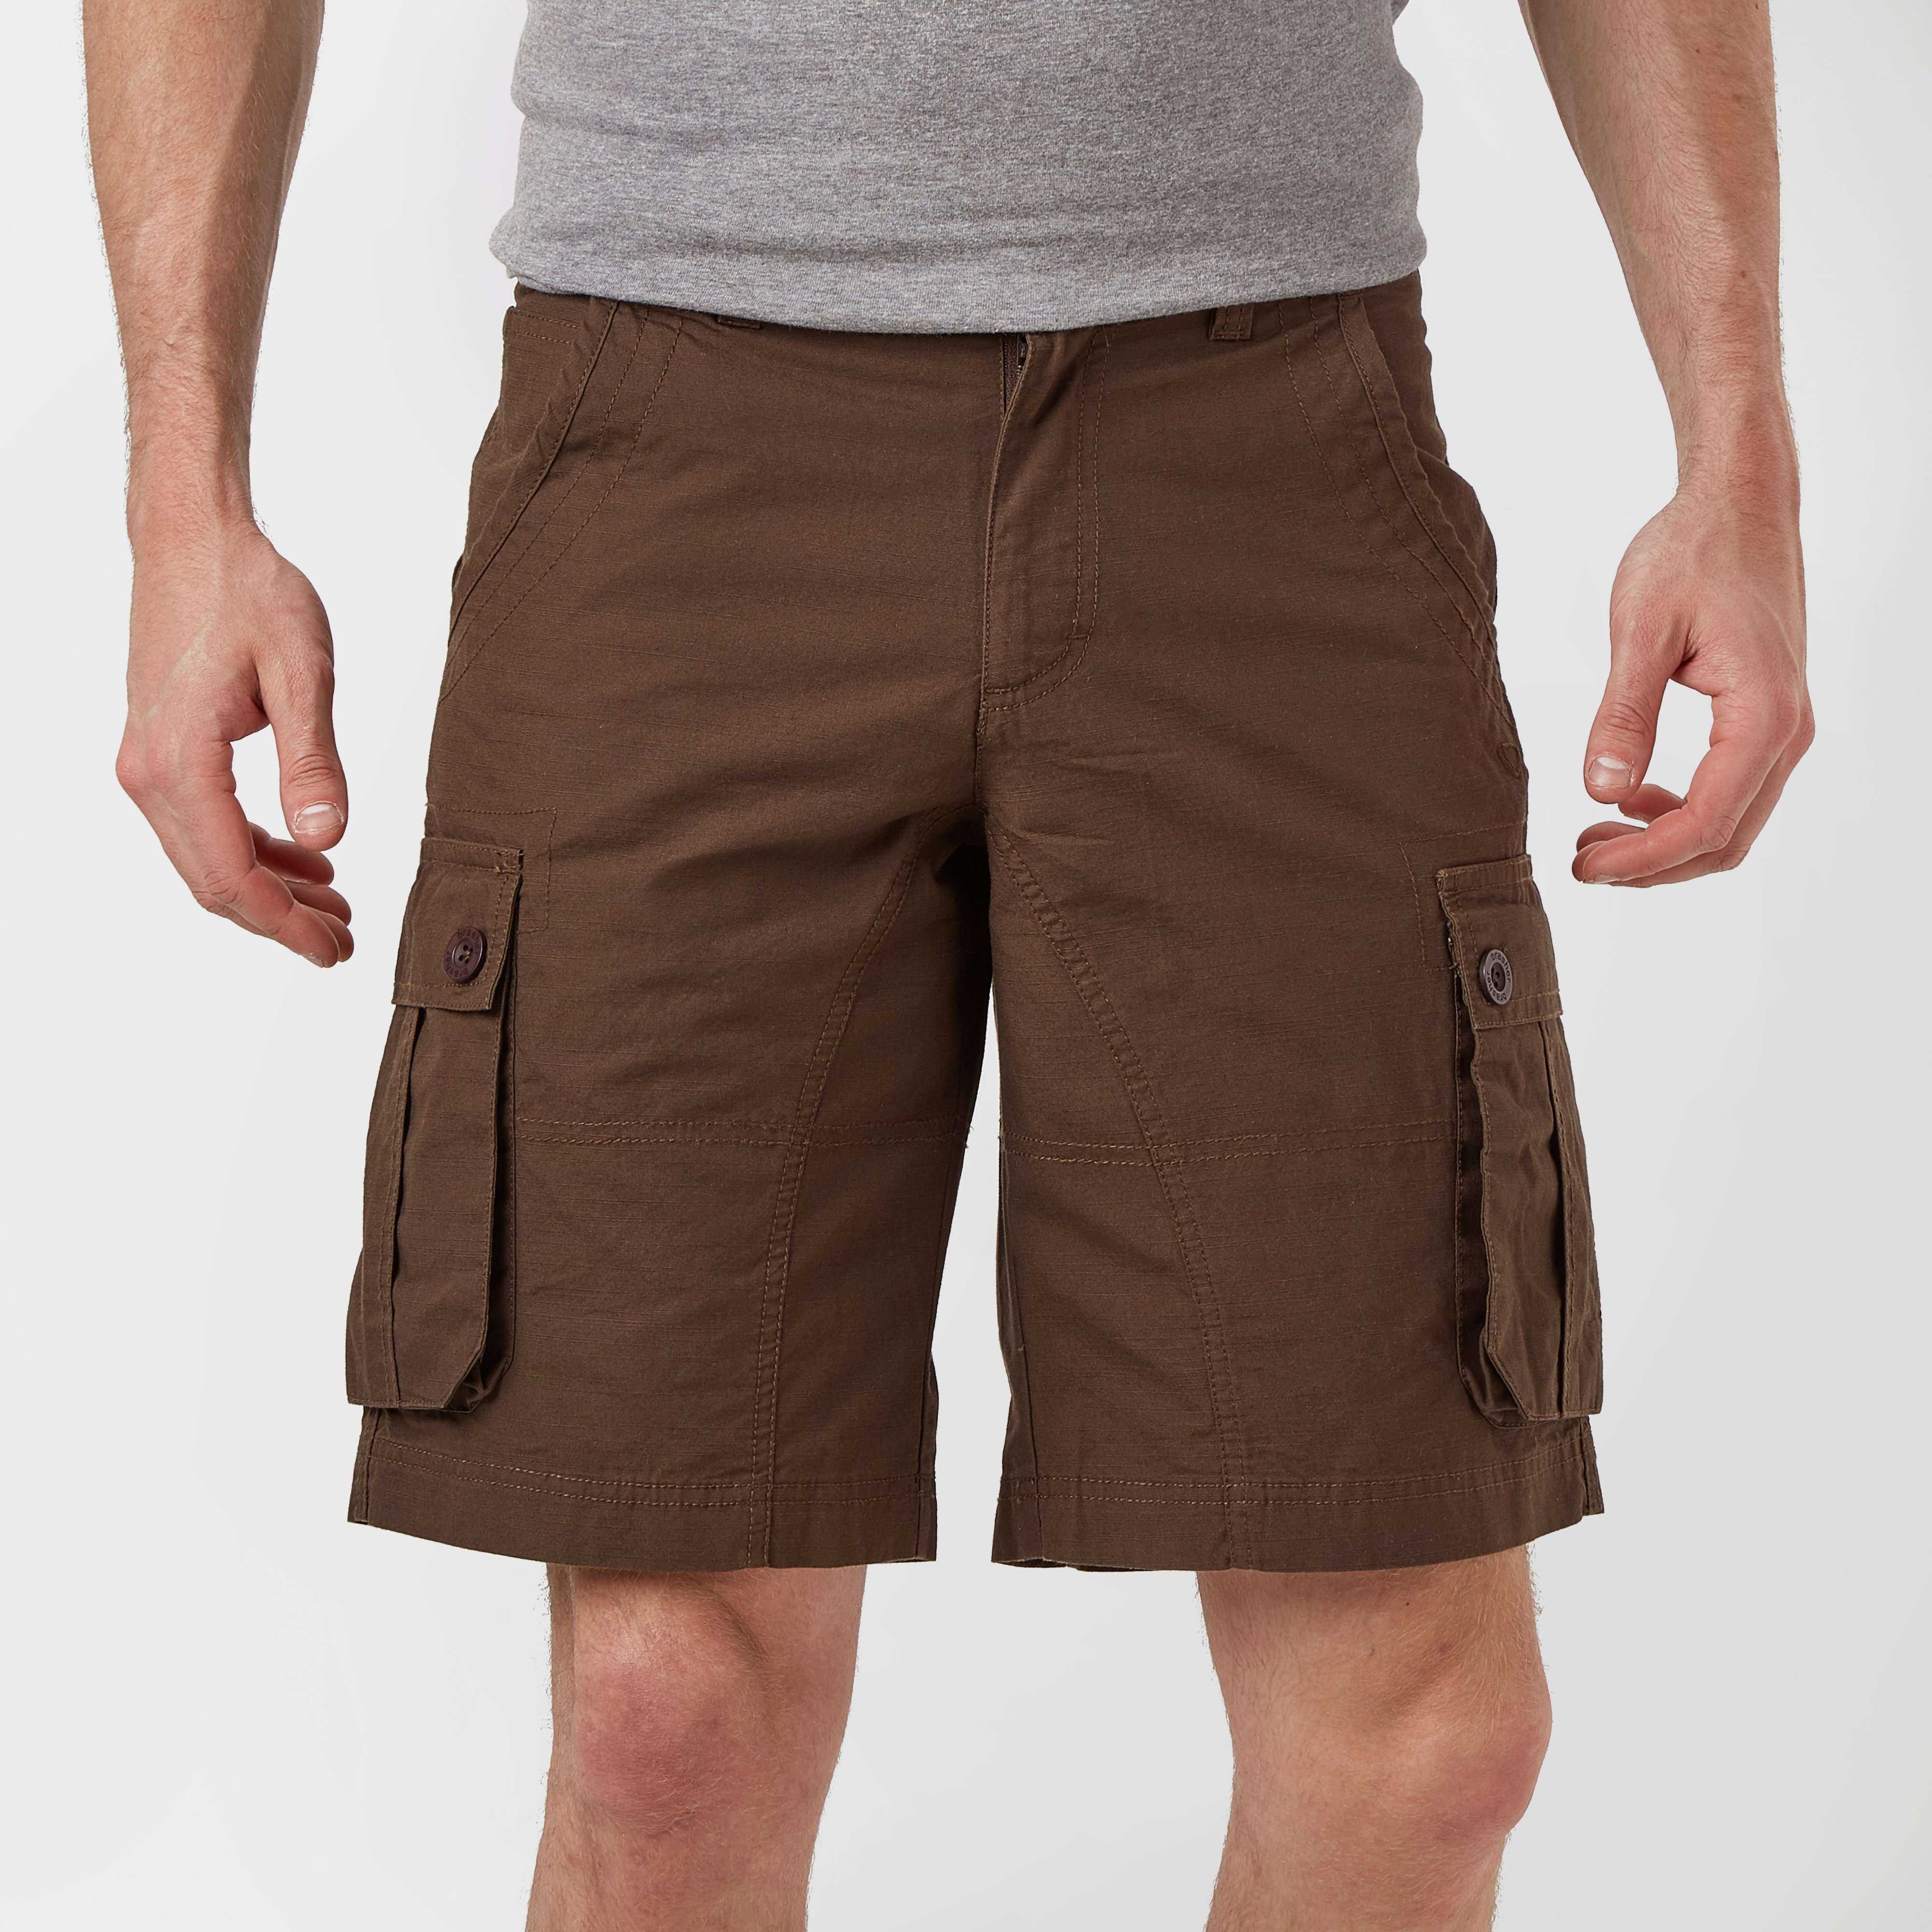 BRASHER Men's Craghill Shorts